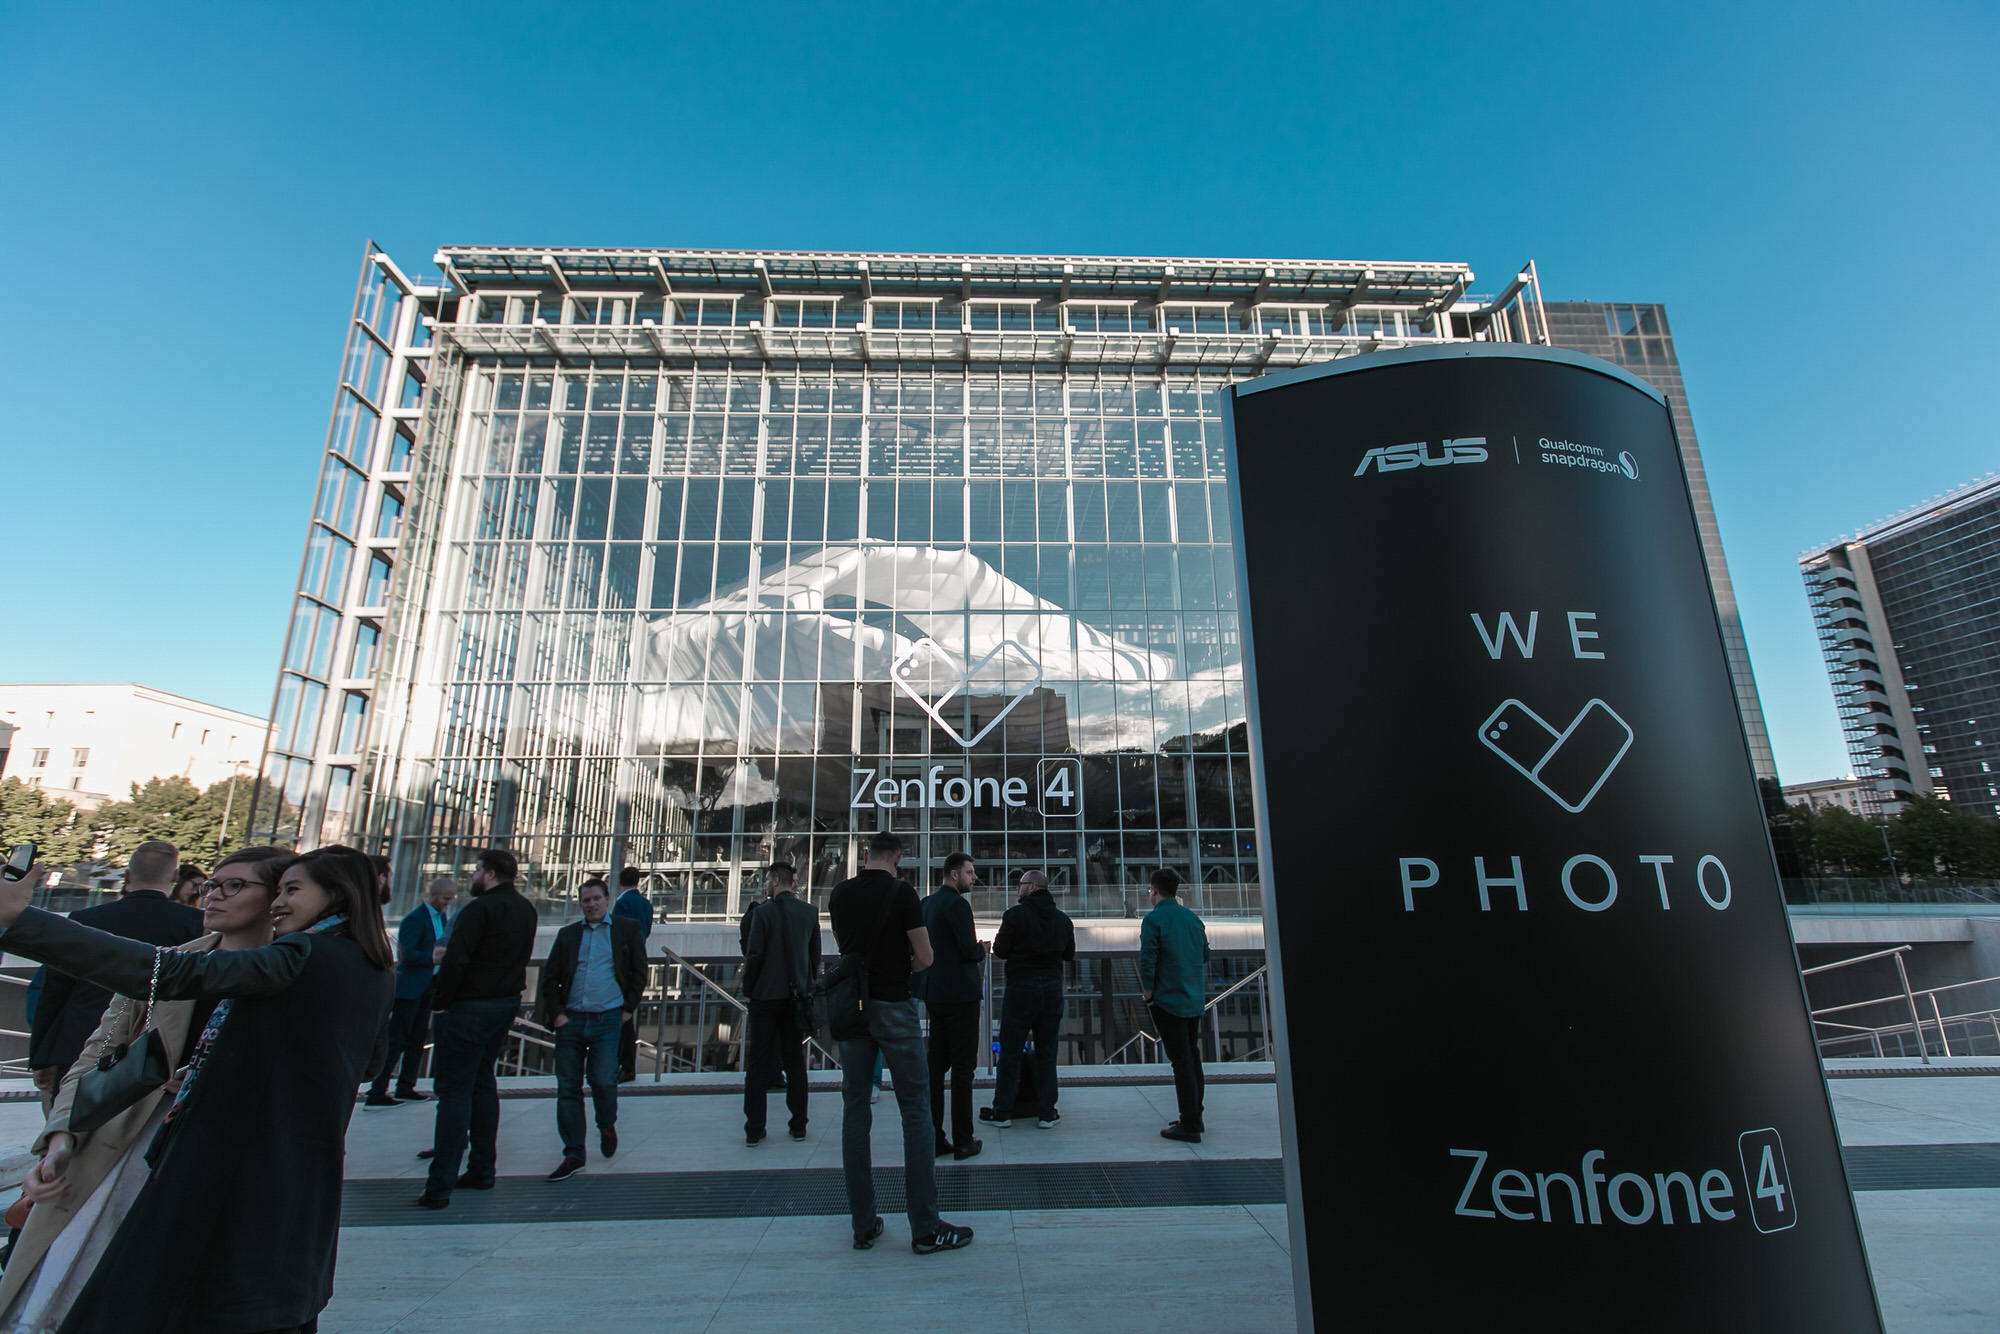 we-love-photo-lancio-europeo-smartphone-zenfone-4-gruppo-peroni-eventi-16